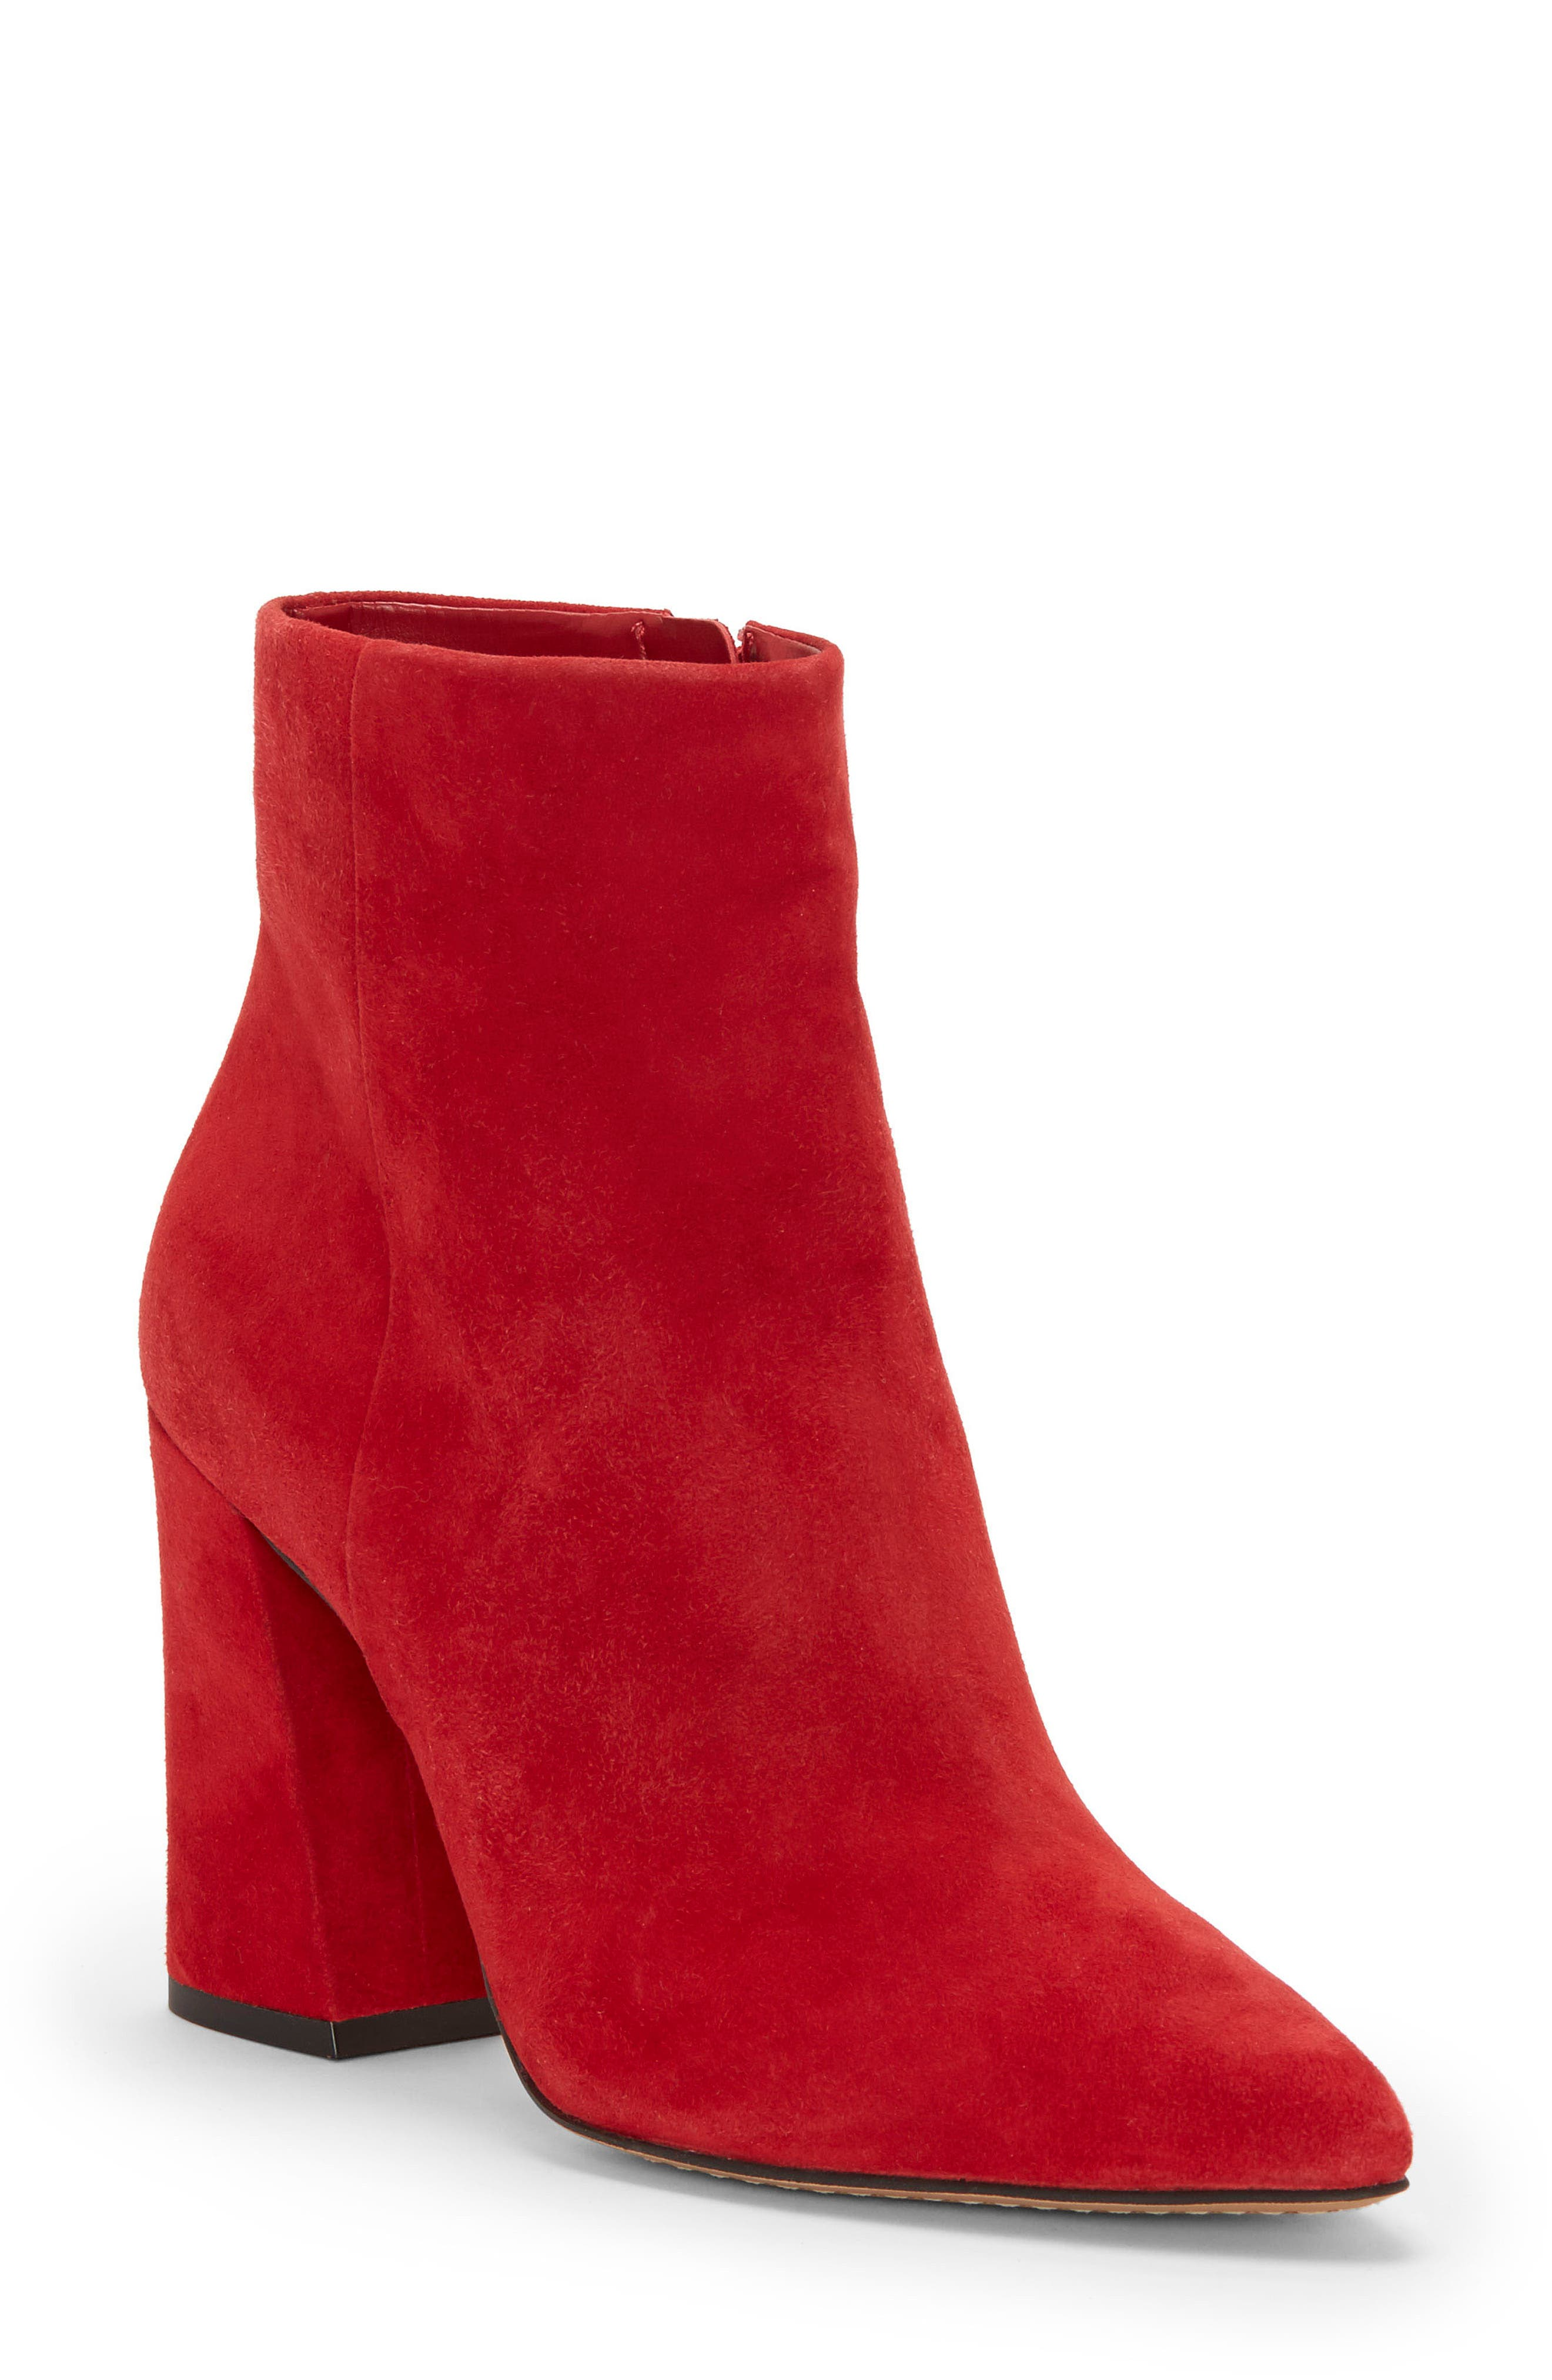 Vince Camuto Thelmin Bootie, Red